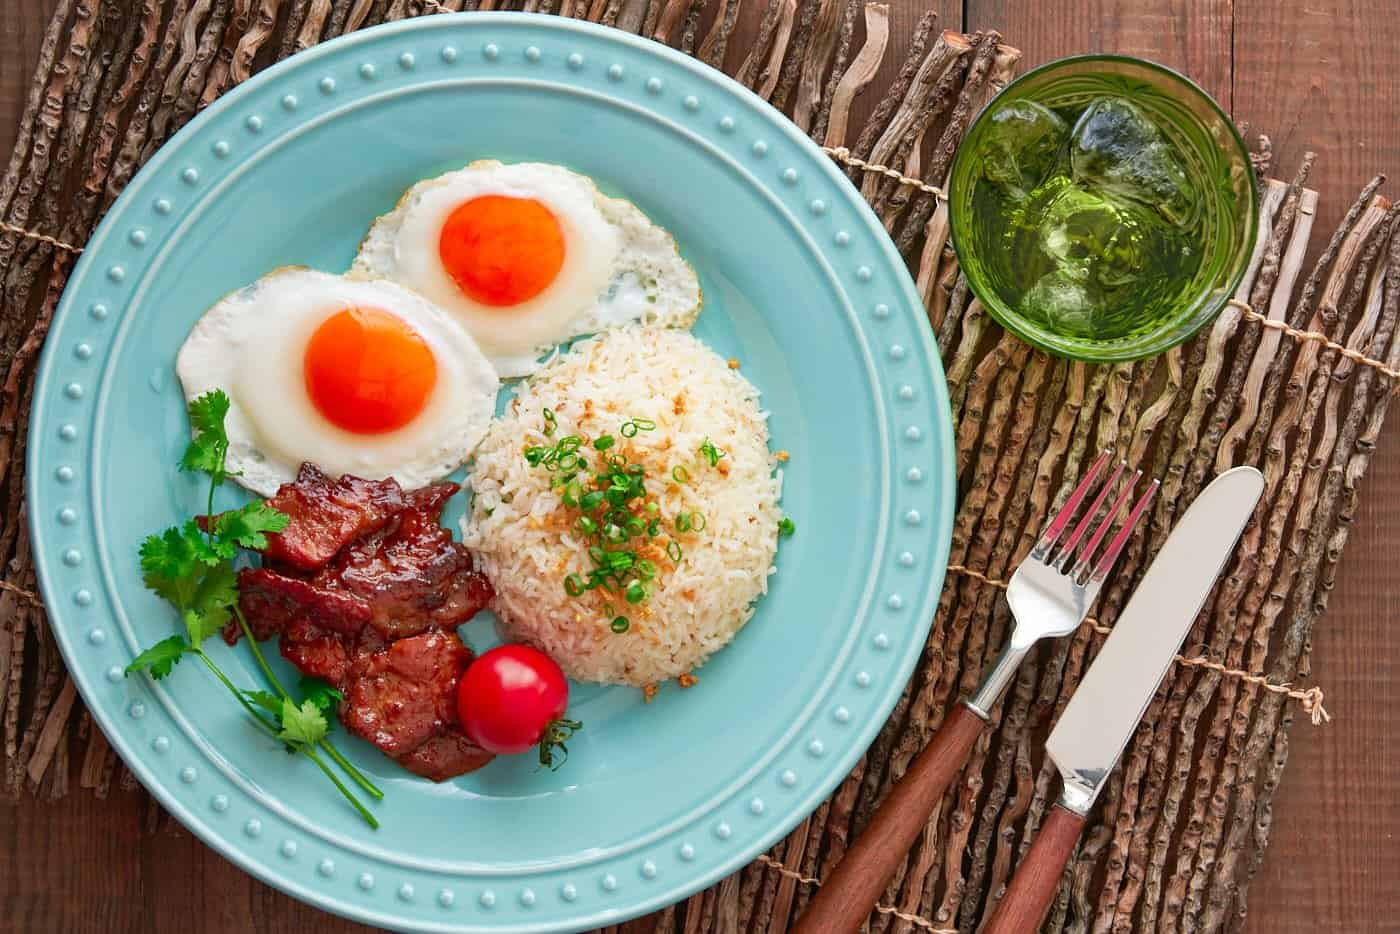 The Best Tosilog Recipe, with home-cured Tocino (Filipino Bacon), Sinangag (garlic fried rice), and sunny side up eggs.